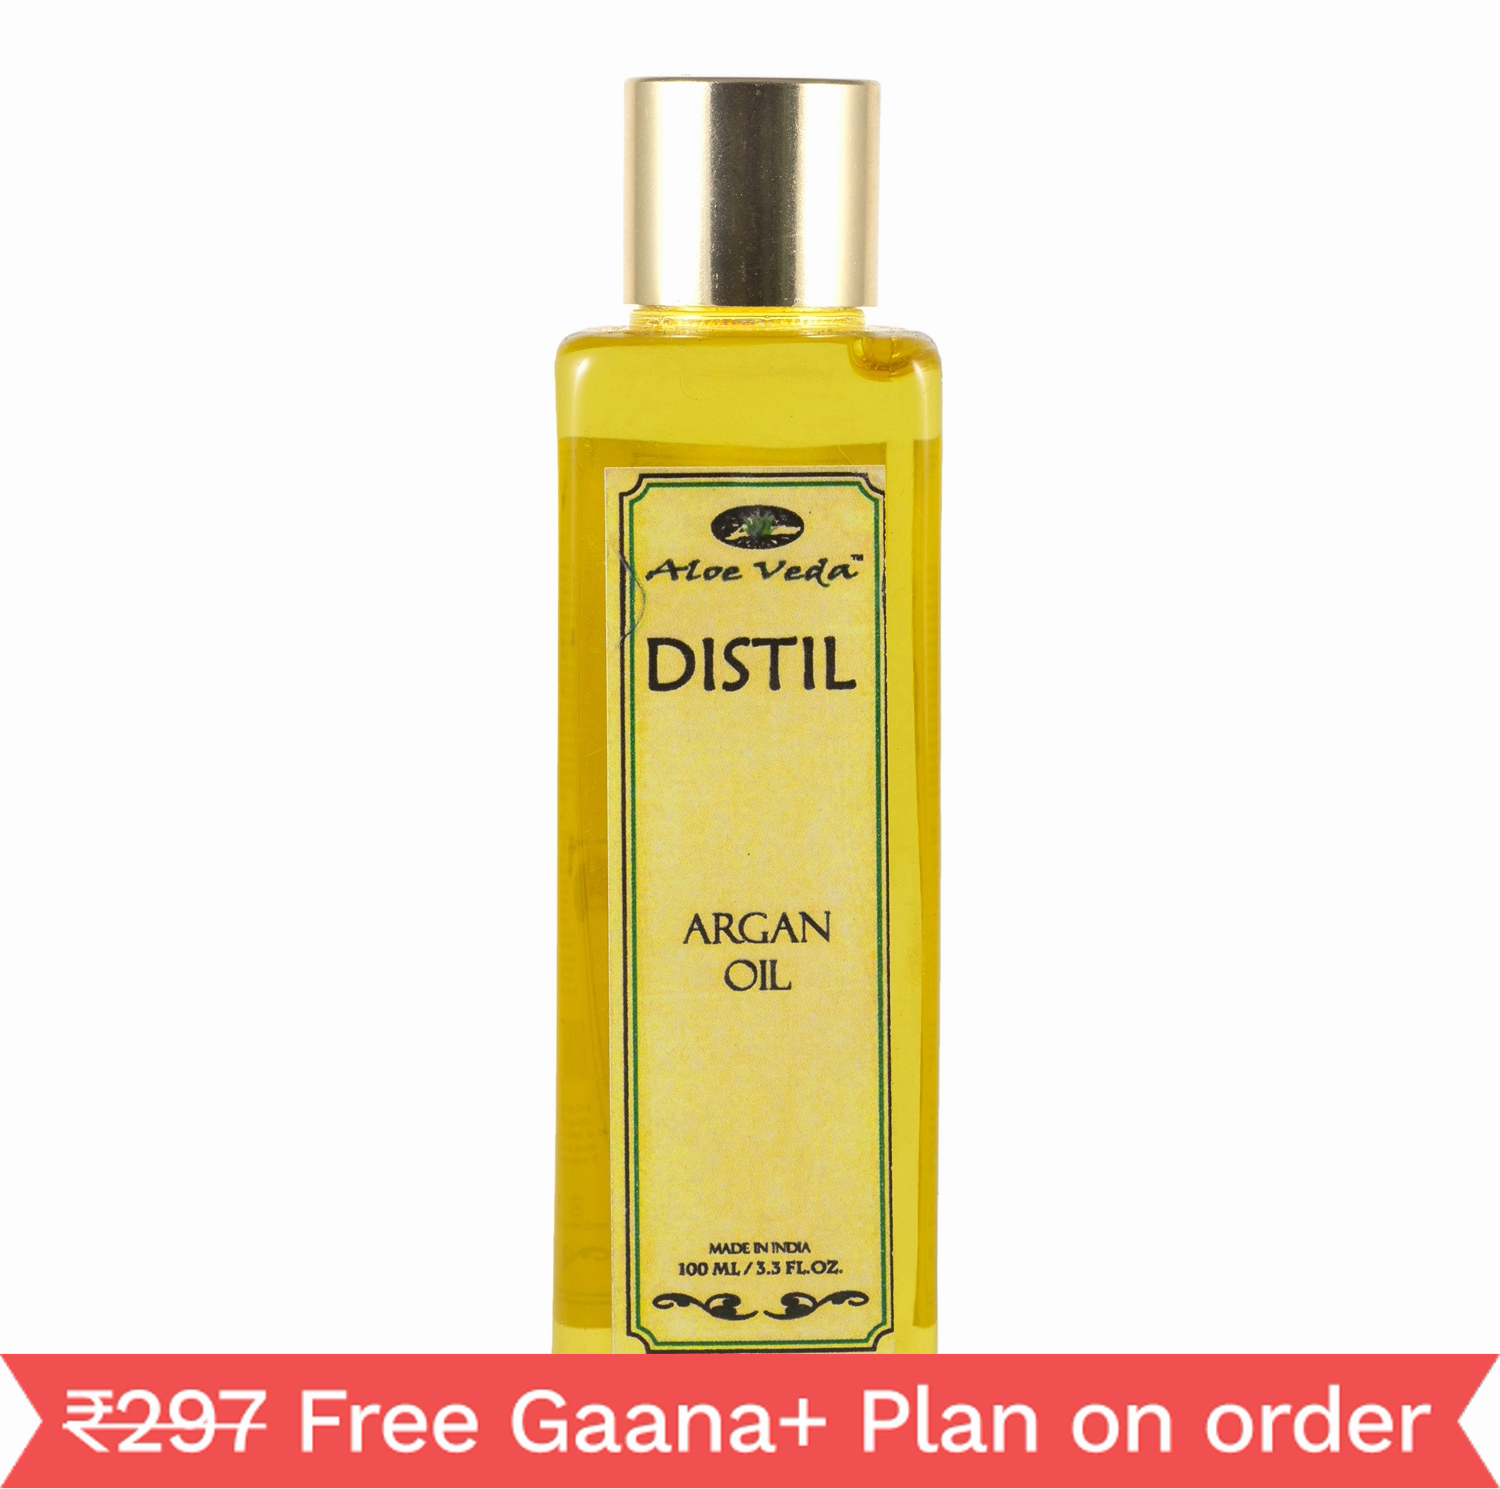 Aloe Veda Distil Argan Oil (100ml)